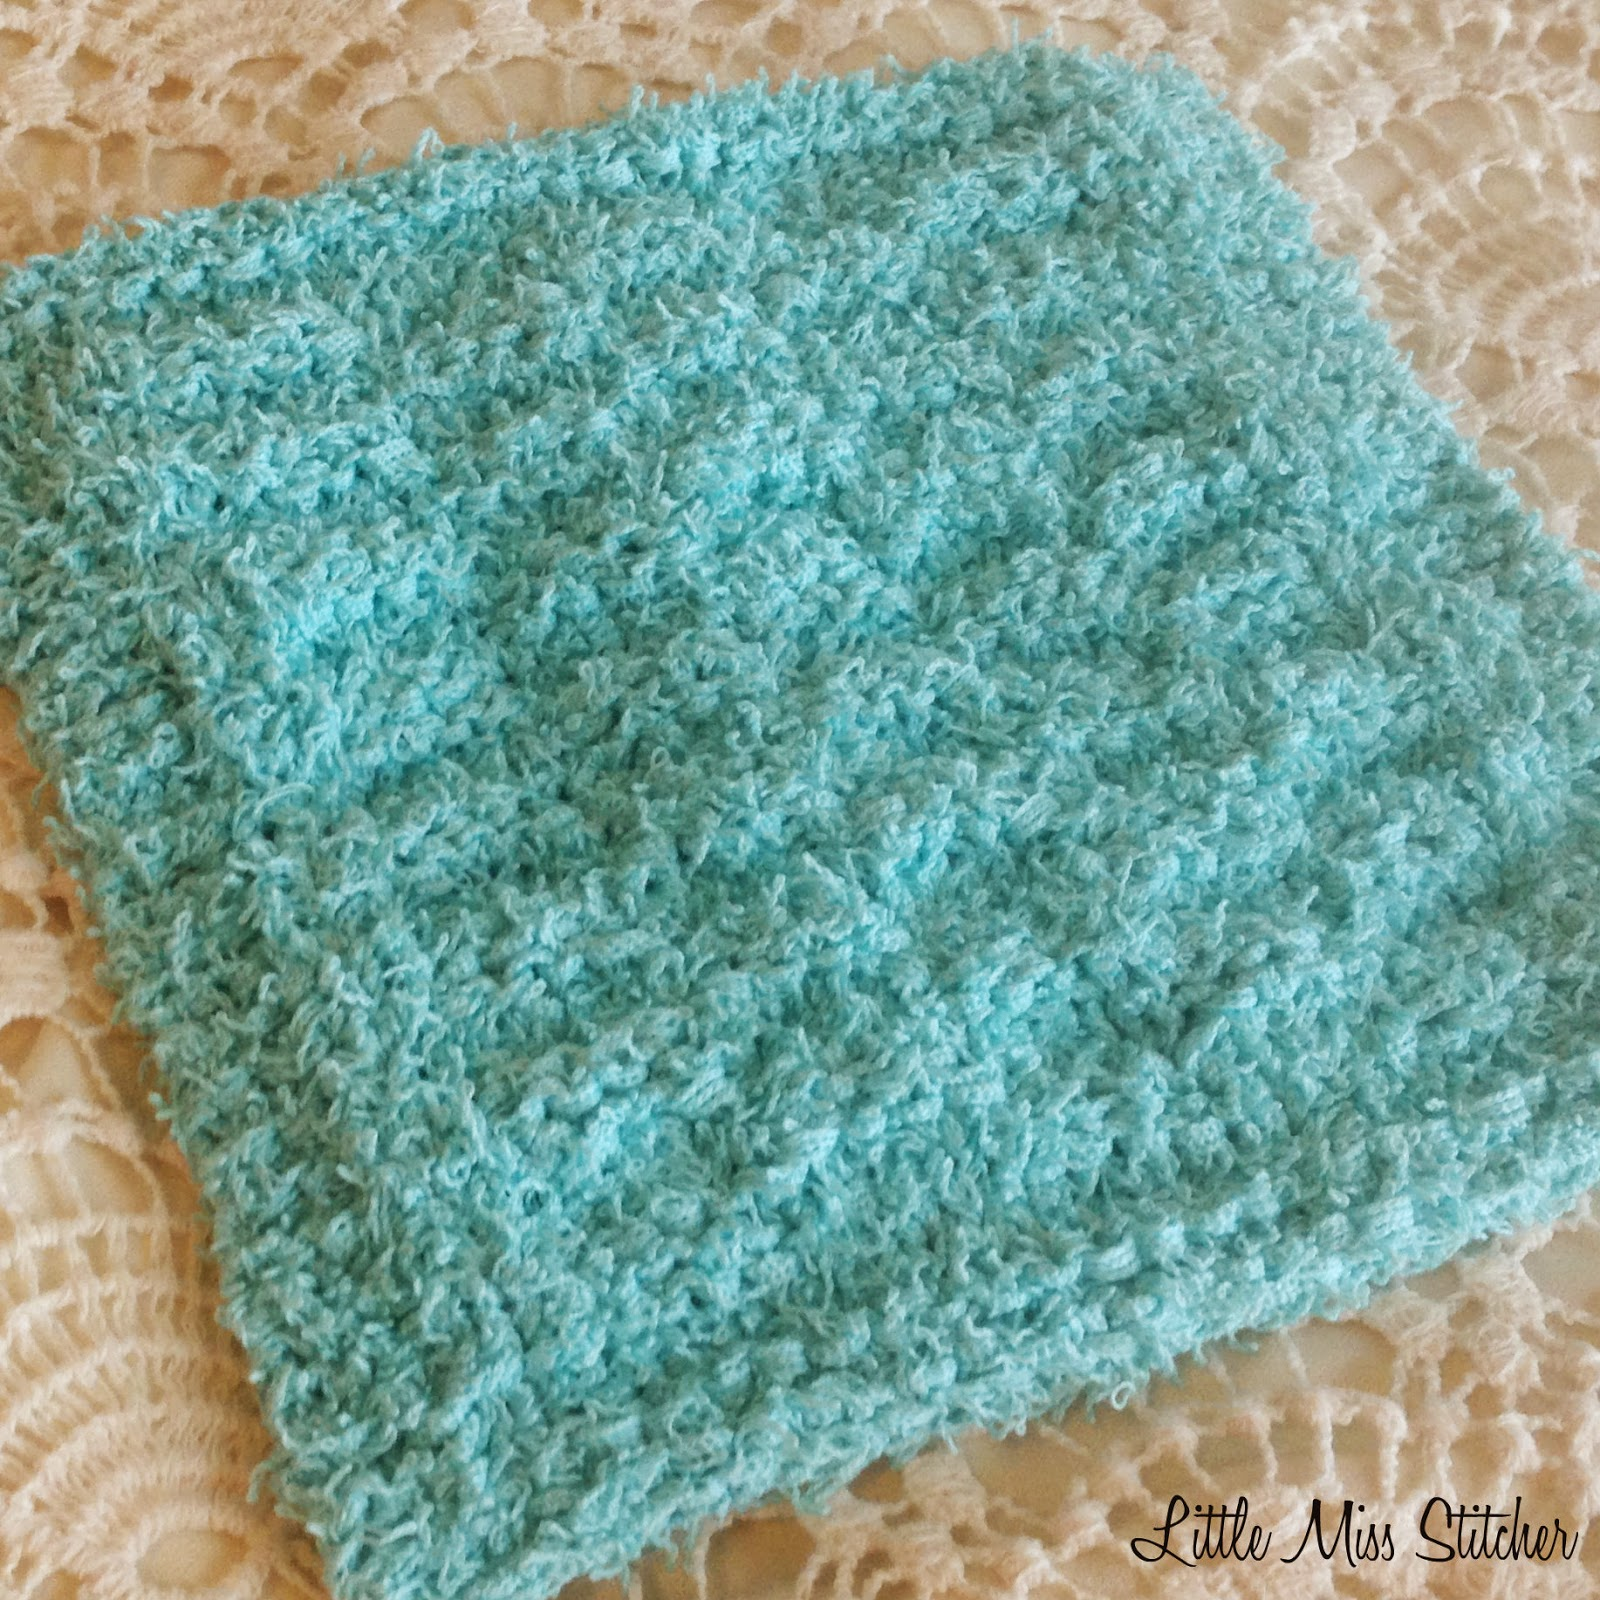 Knitting A Dishcloth Pattern Easy : Little Miss Stitcher: 5 Free Knit Dishcloth Patterns